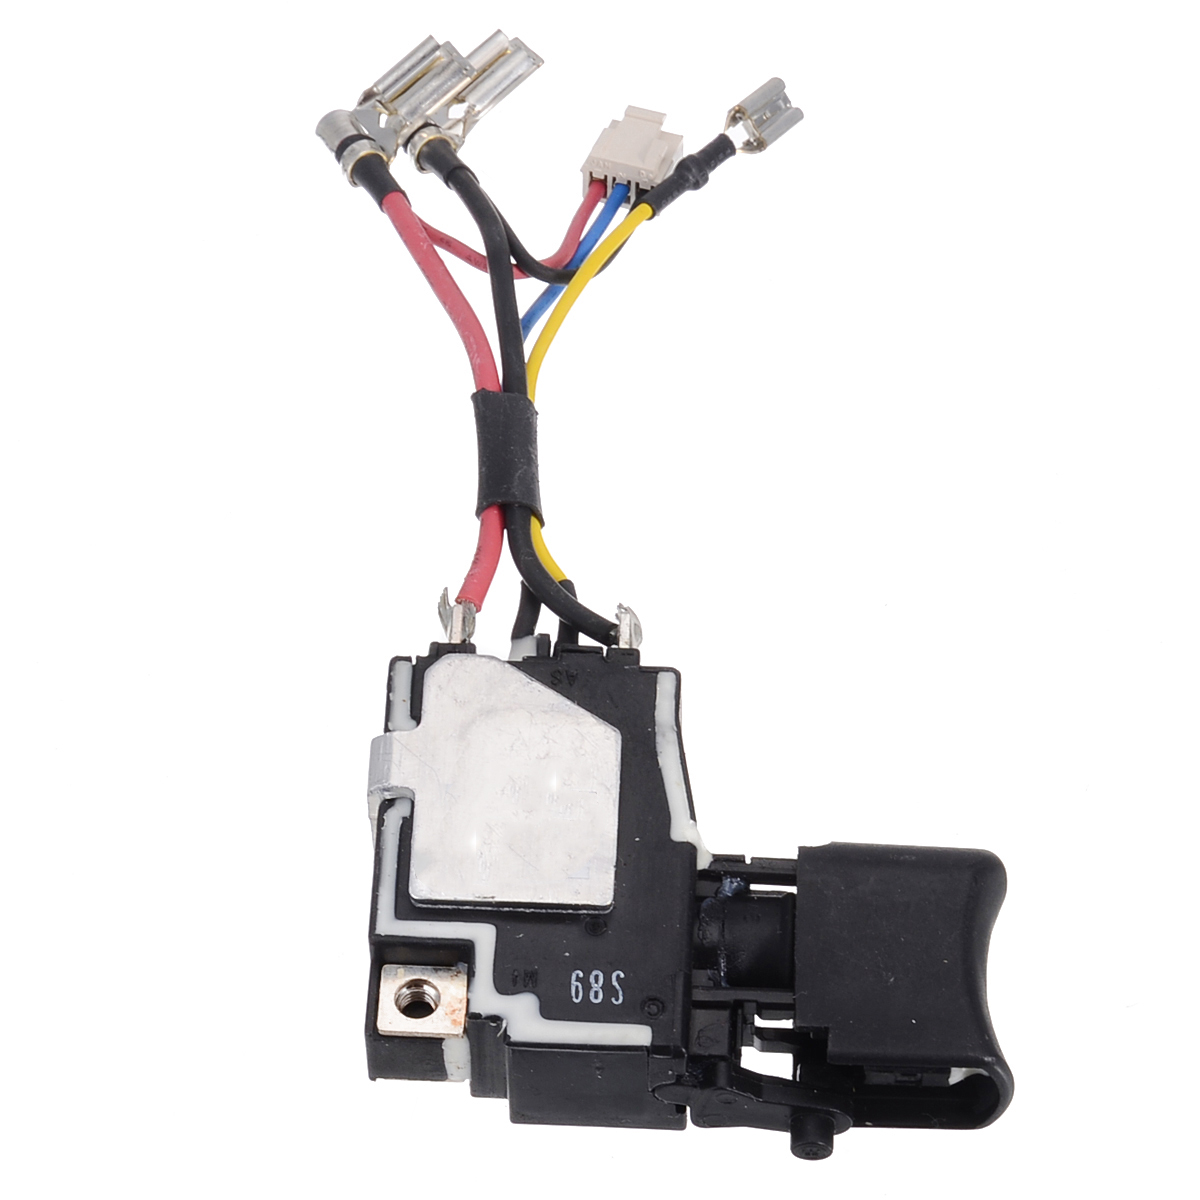 New Switch 18V For Makita 6507228 DTD134 BTD134 BTD146 DTD146 BTD134Z TD134D For Replacement Power Tools Accessories|Power Tool Accessories| |  - title=